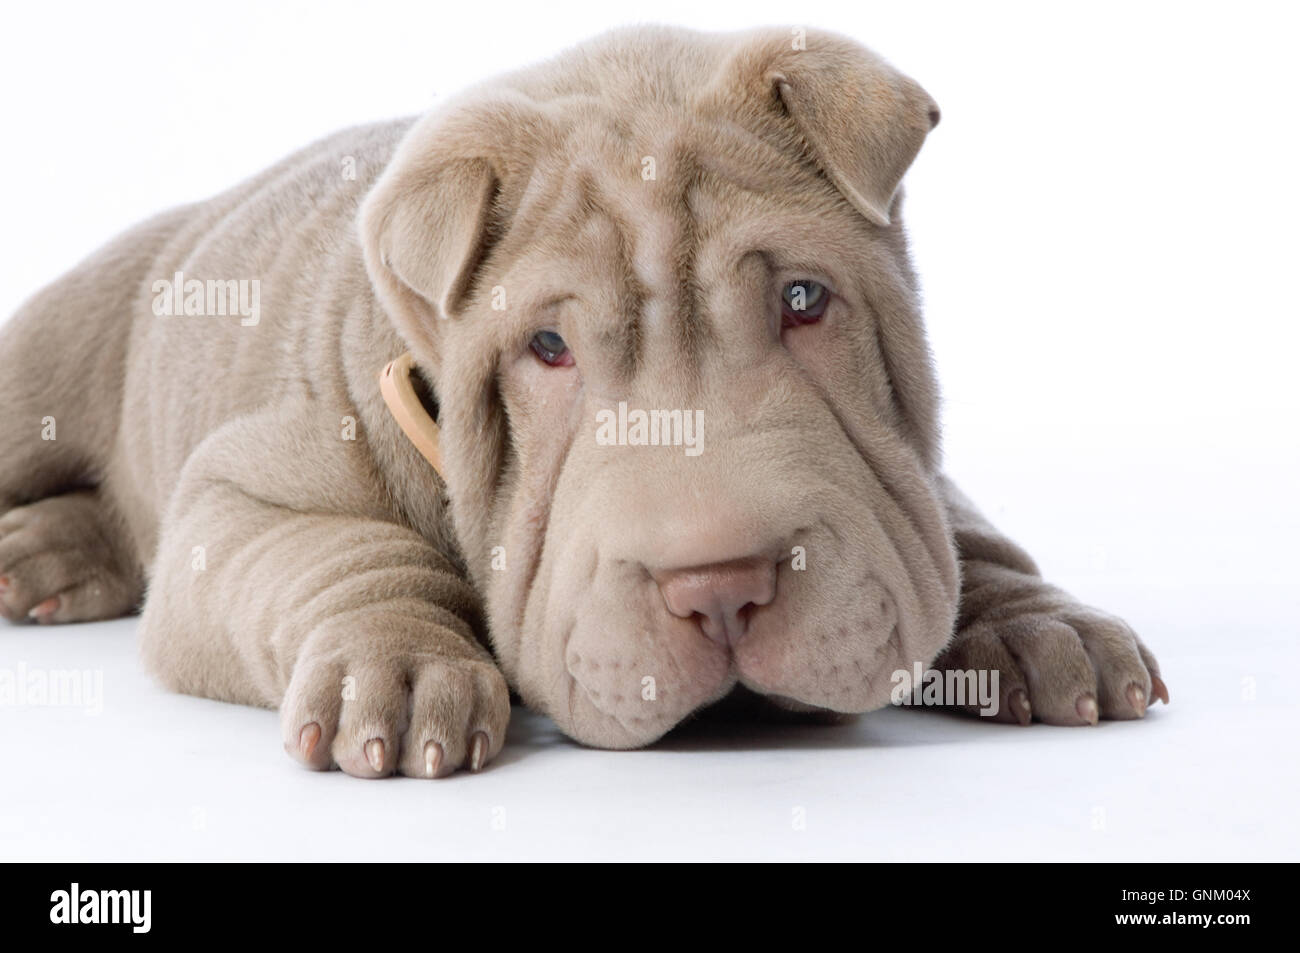 Chinese Shar Pei puppy dog  wrinkles wrinkled wrinkle wrinkly  puppies dogs baggy skin flesh fold folds of cute - Stock Image